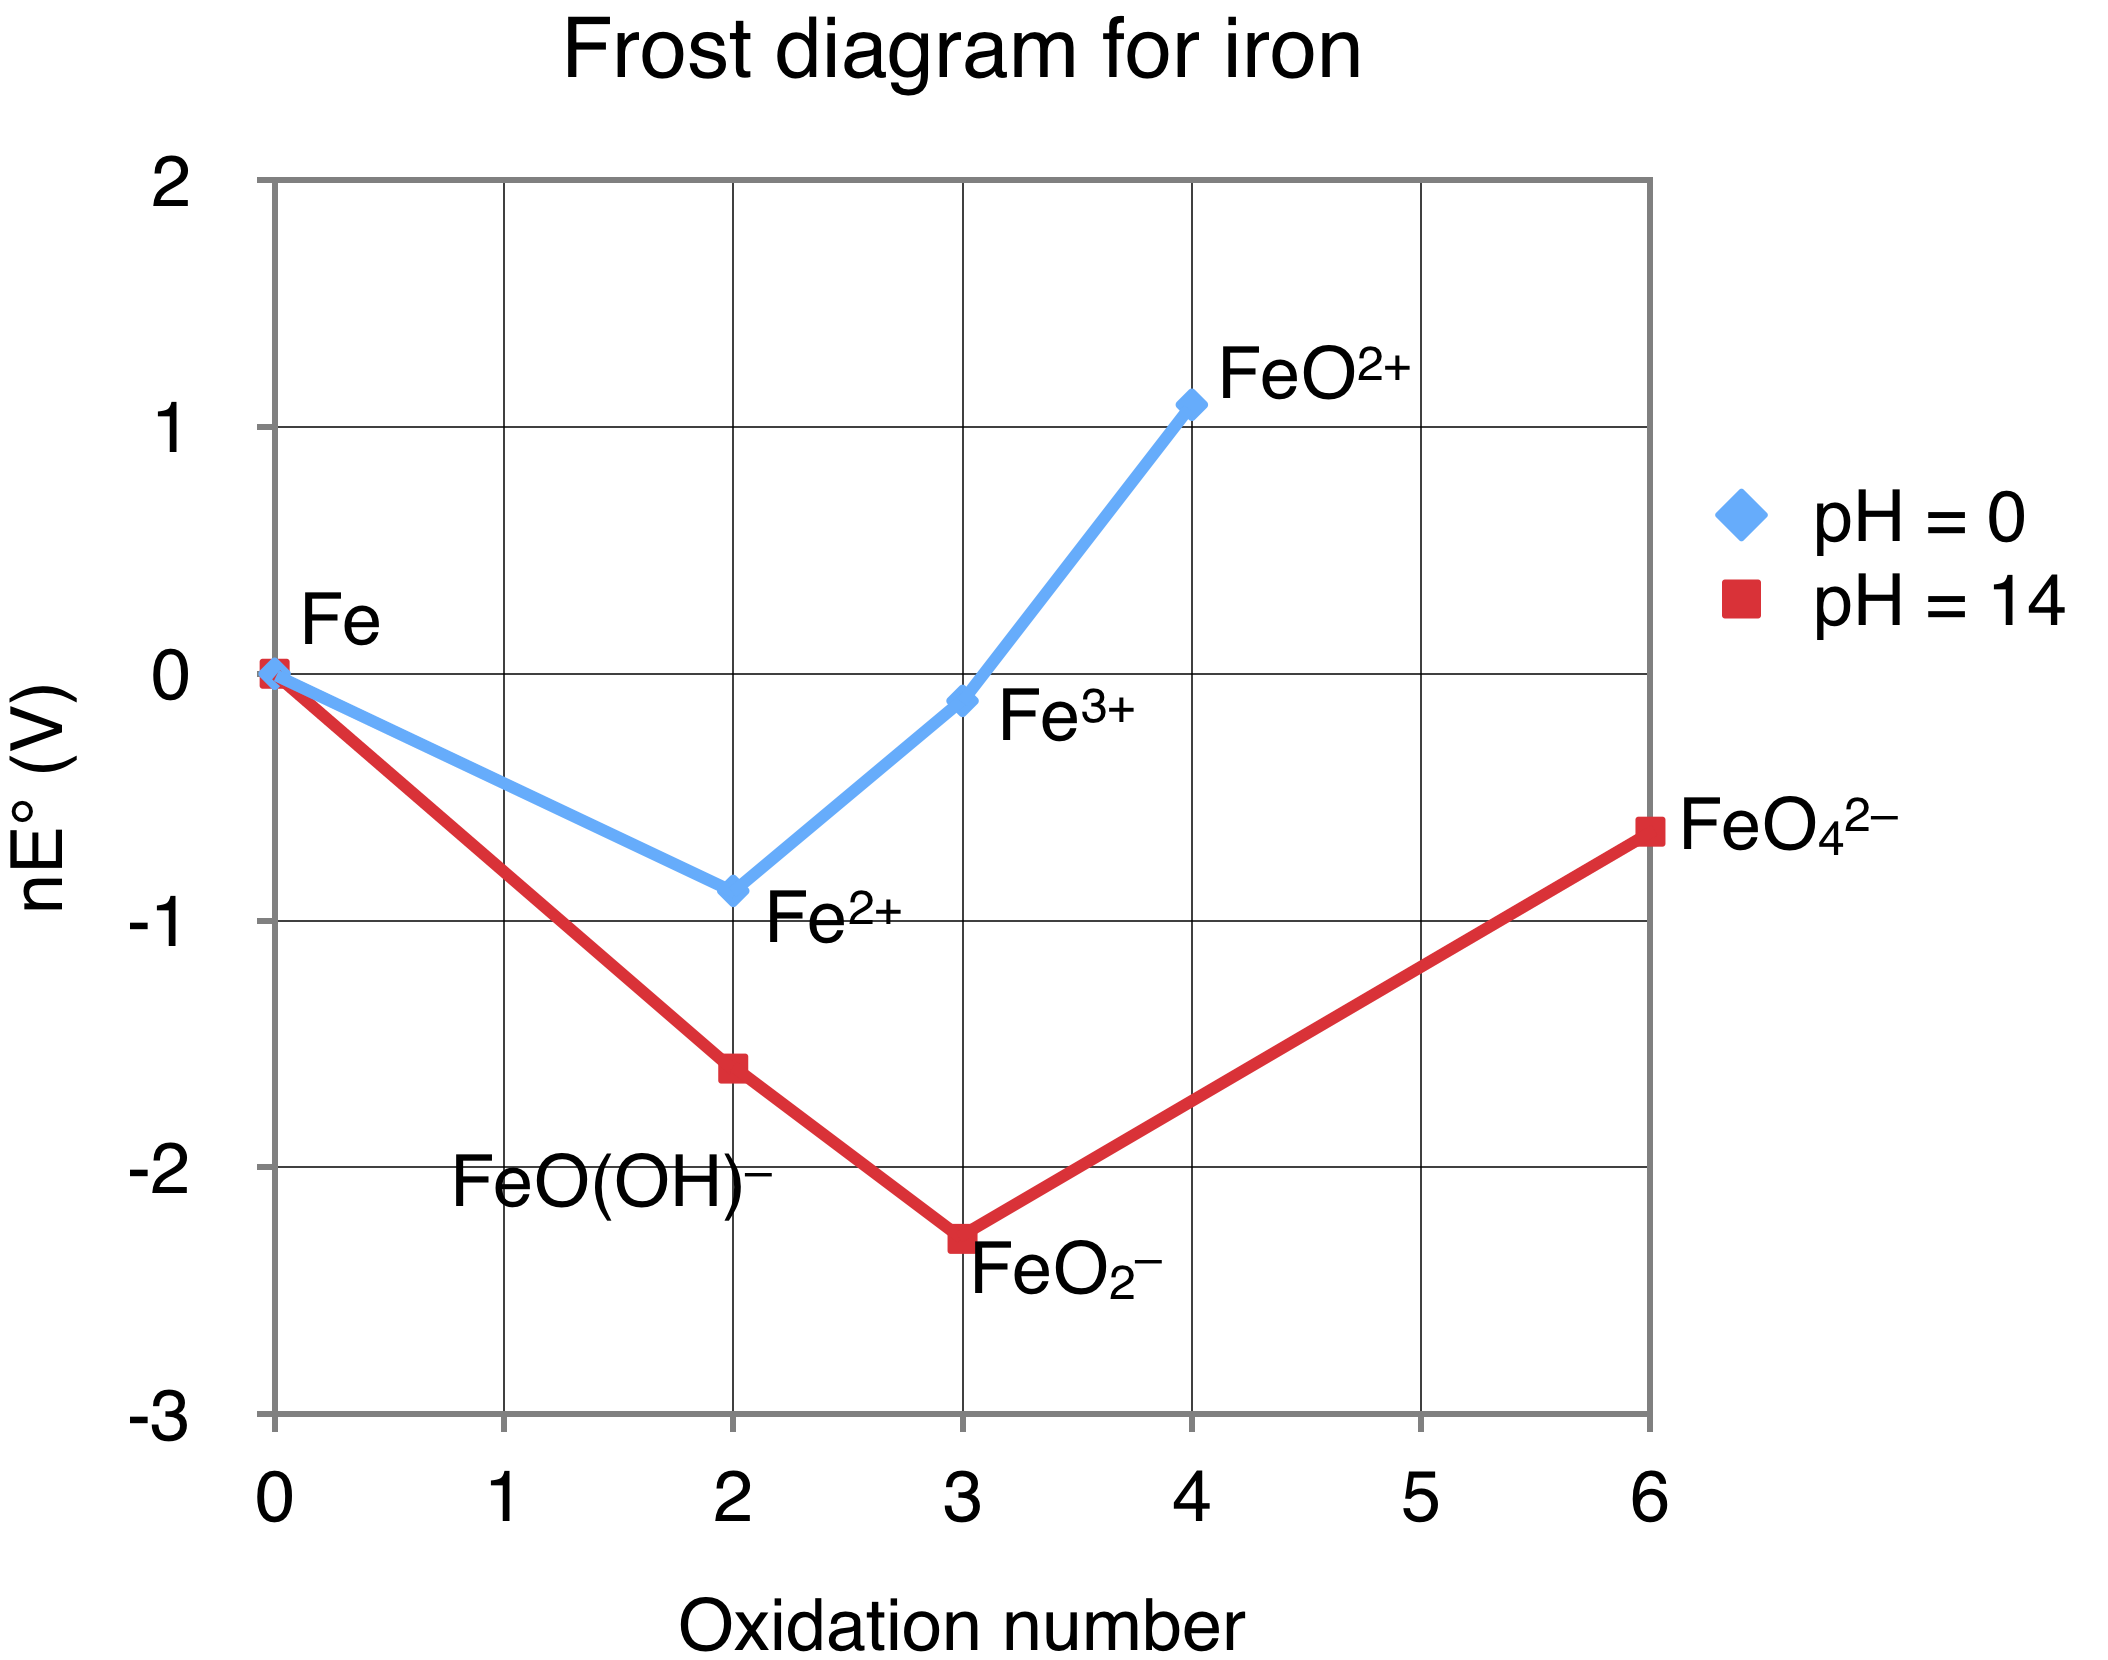 File Frost Diagram For Iron Png